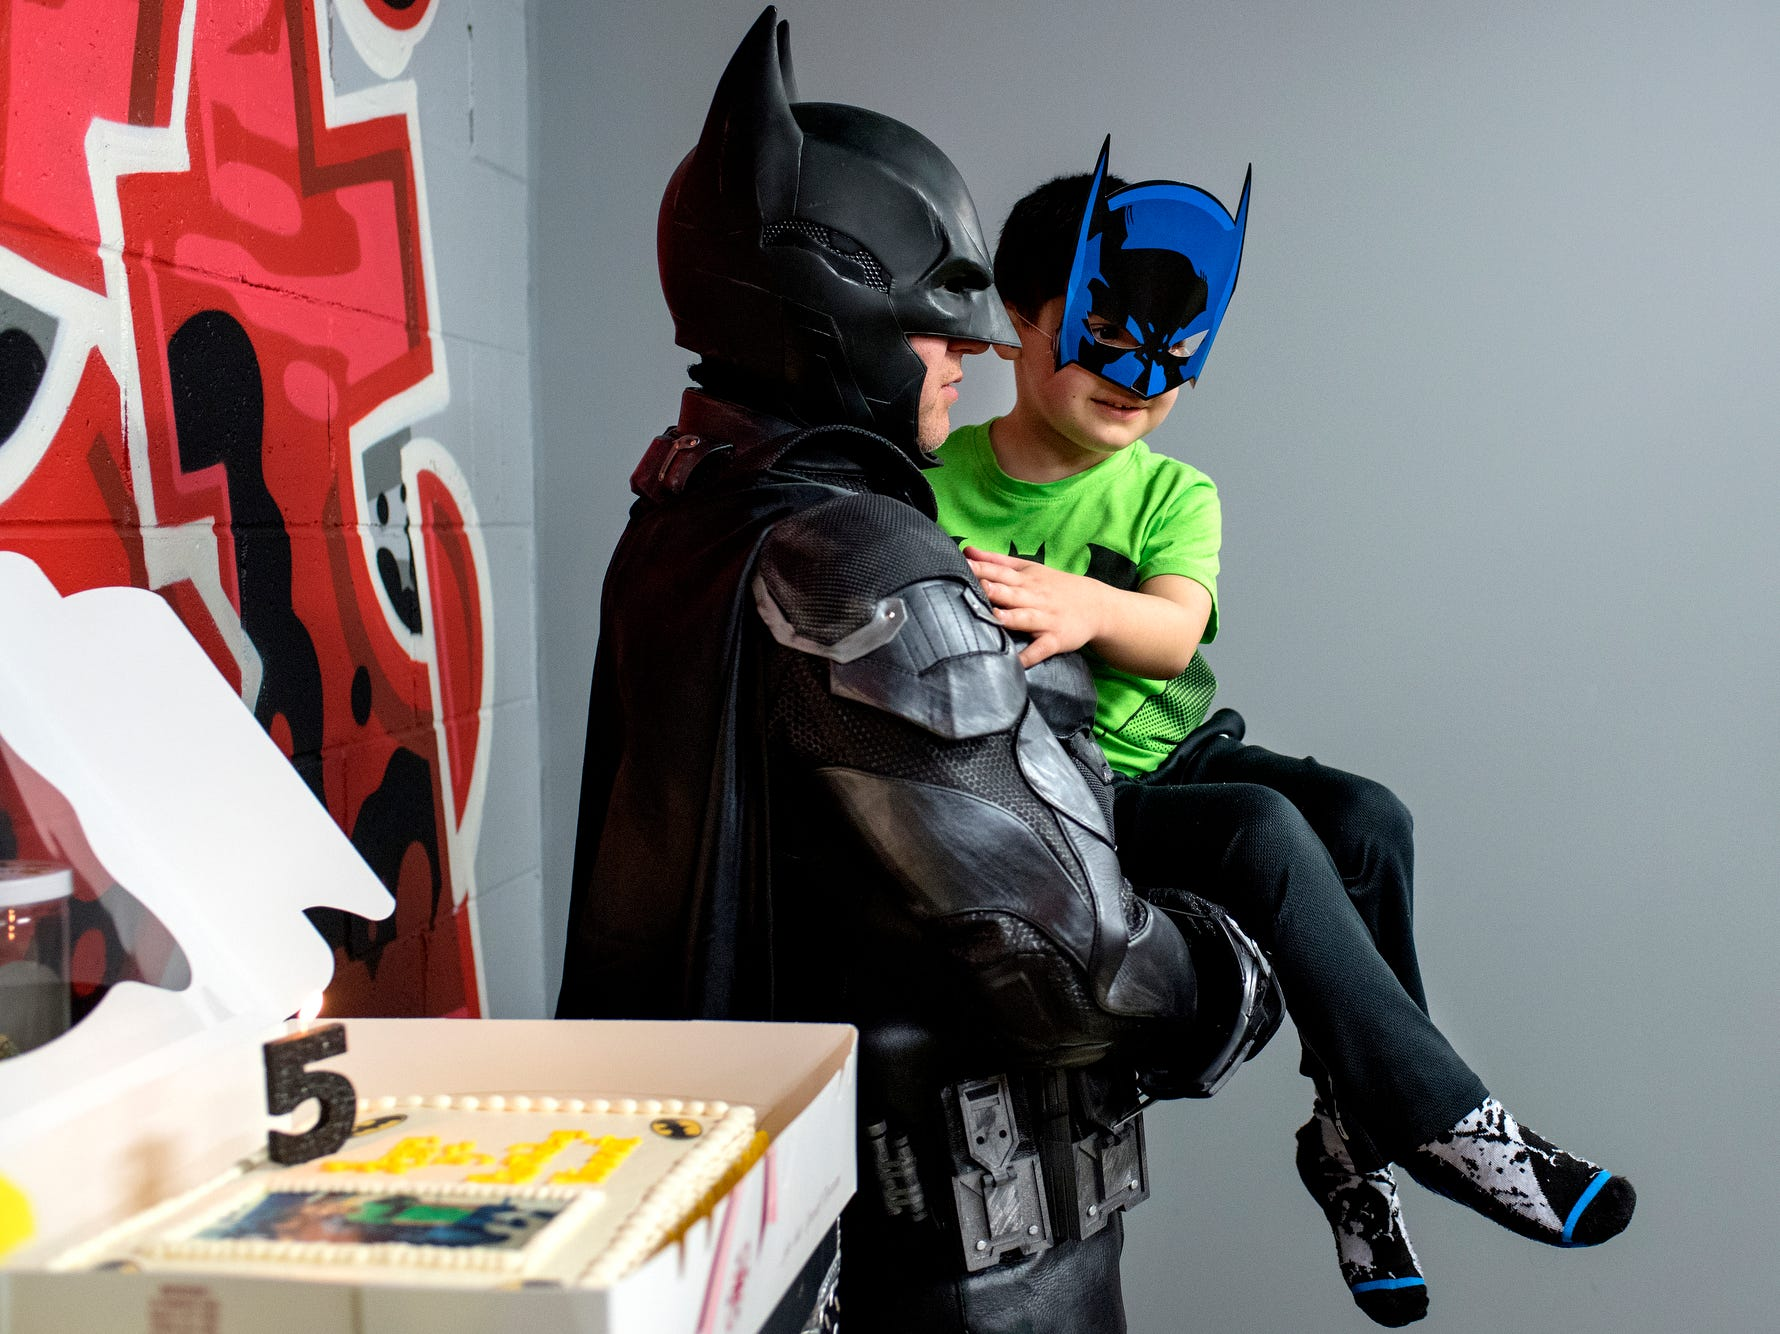 Shamus Smith, dressed as Lansing Batman, left, holds 5-year-old Vincent Gentile while guests sing him happy birthday during his birthday party on Saturday, March 24, 2018, at the District5 Extreme Air Sports trampoline park in Lansing. Members of the League of Enchantment dressed as superheroes and attended Gentile's birthday. Gentile is recovering from retinoblastoma, a rare eye cancer.